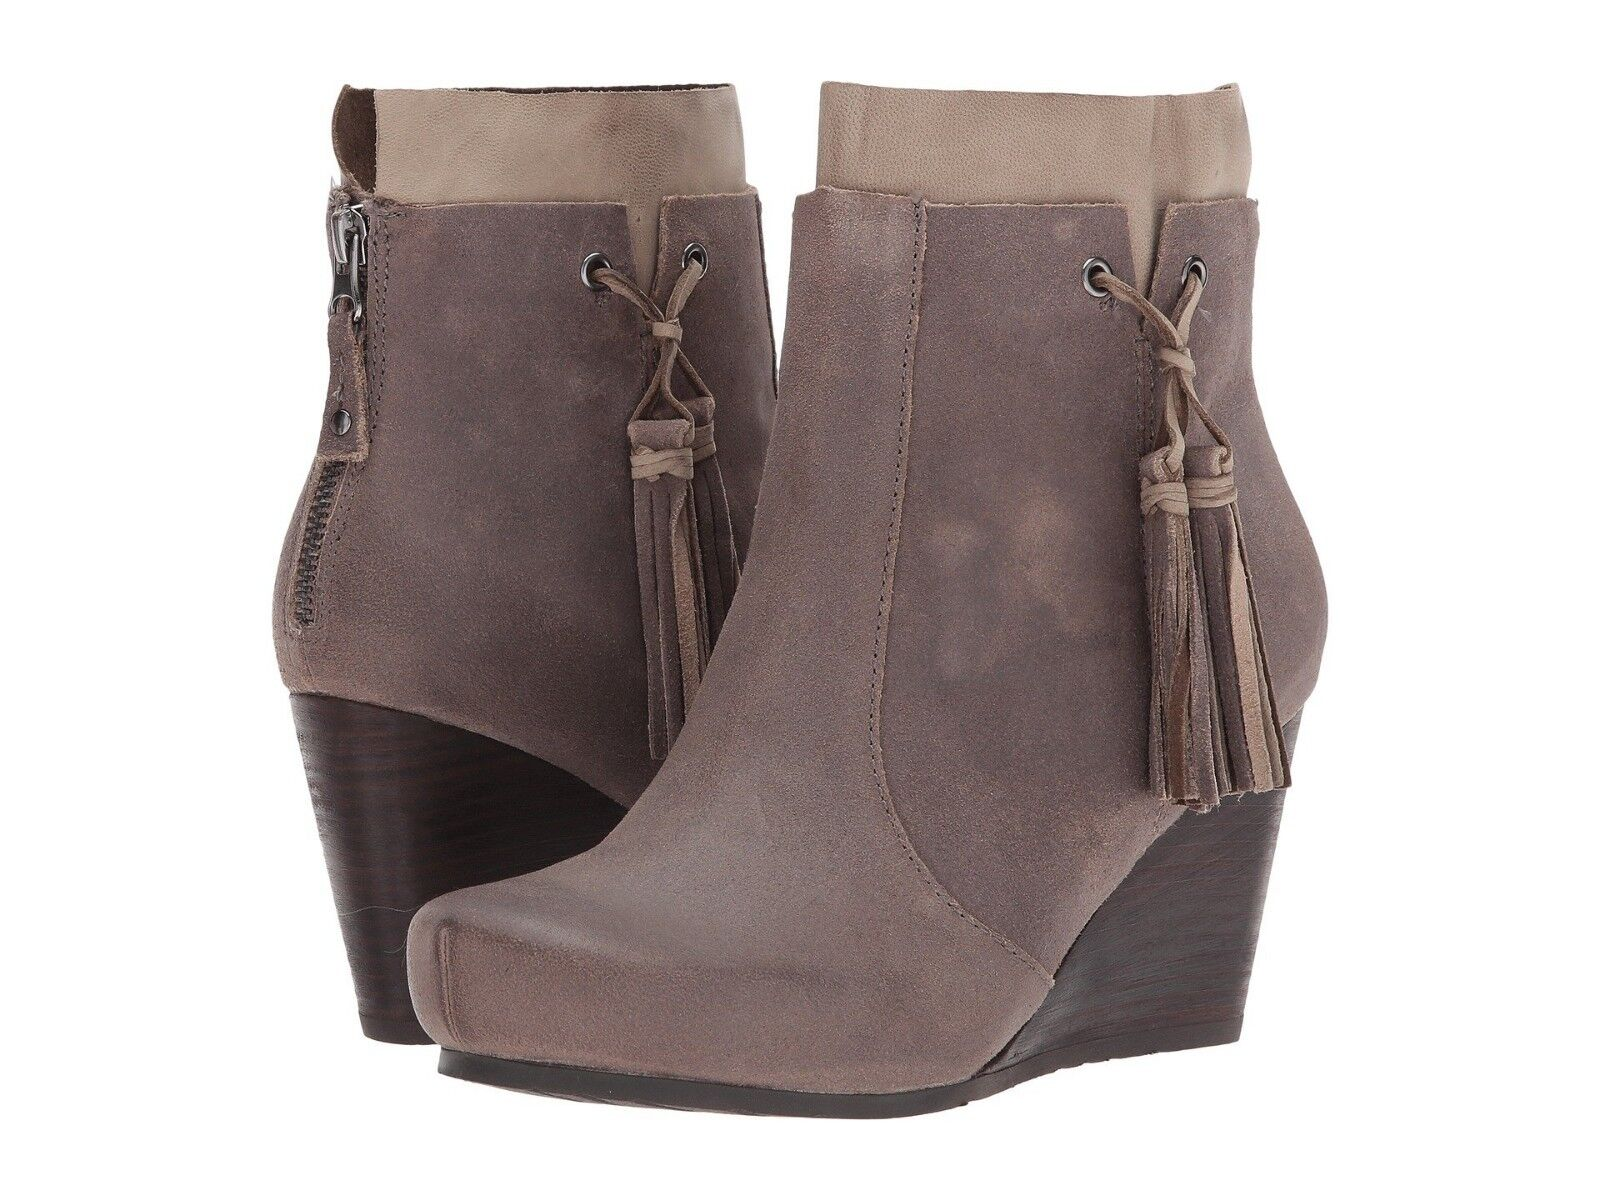 NEW OTBT Vagary Wedge Bootie, Dust Grey Oil Split Suede, Women Size 9.5,